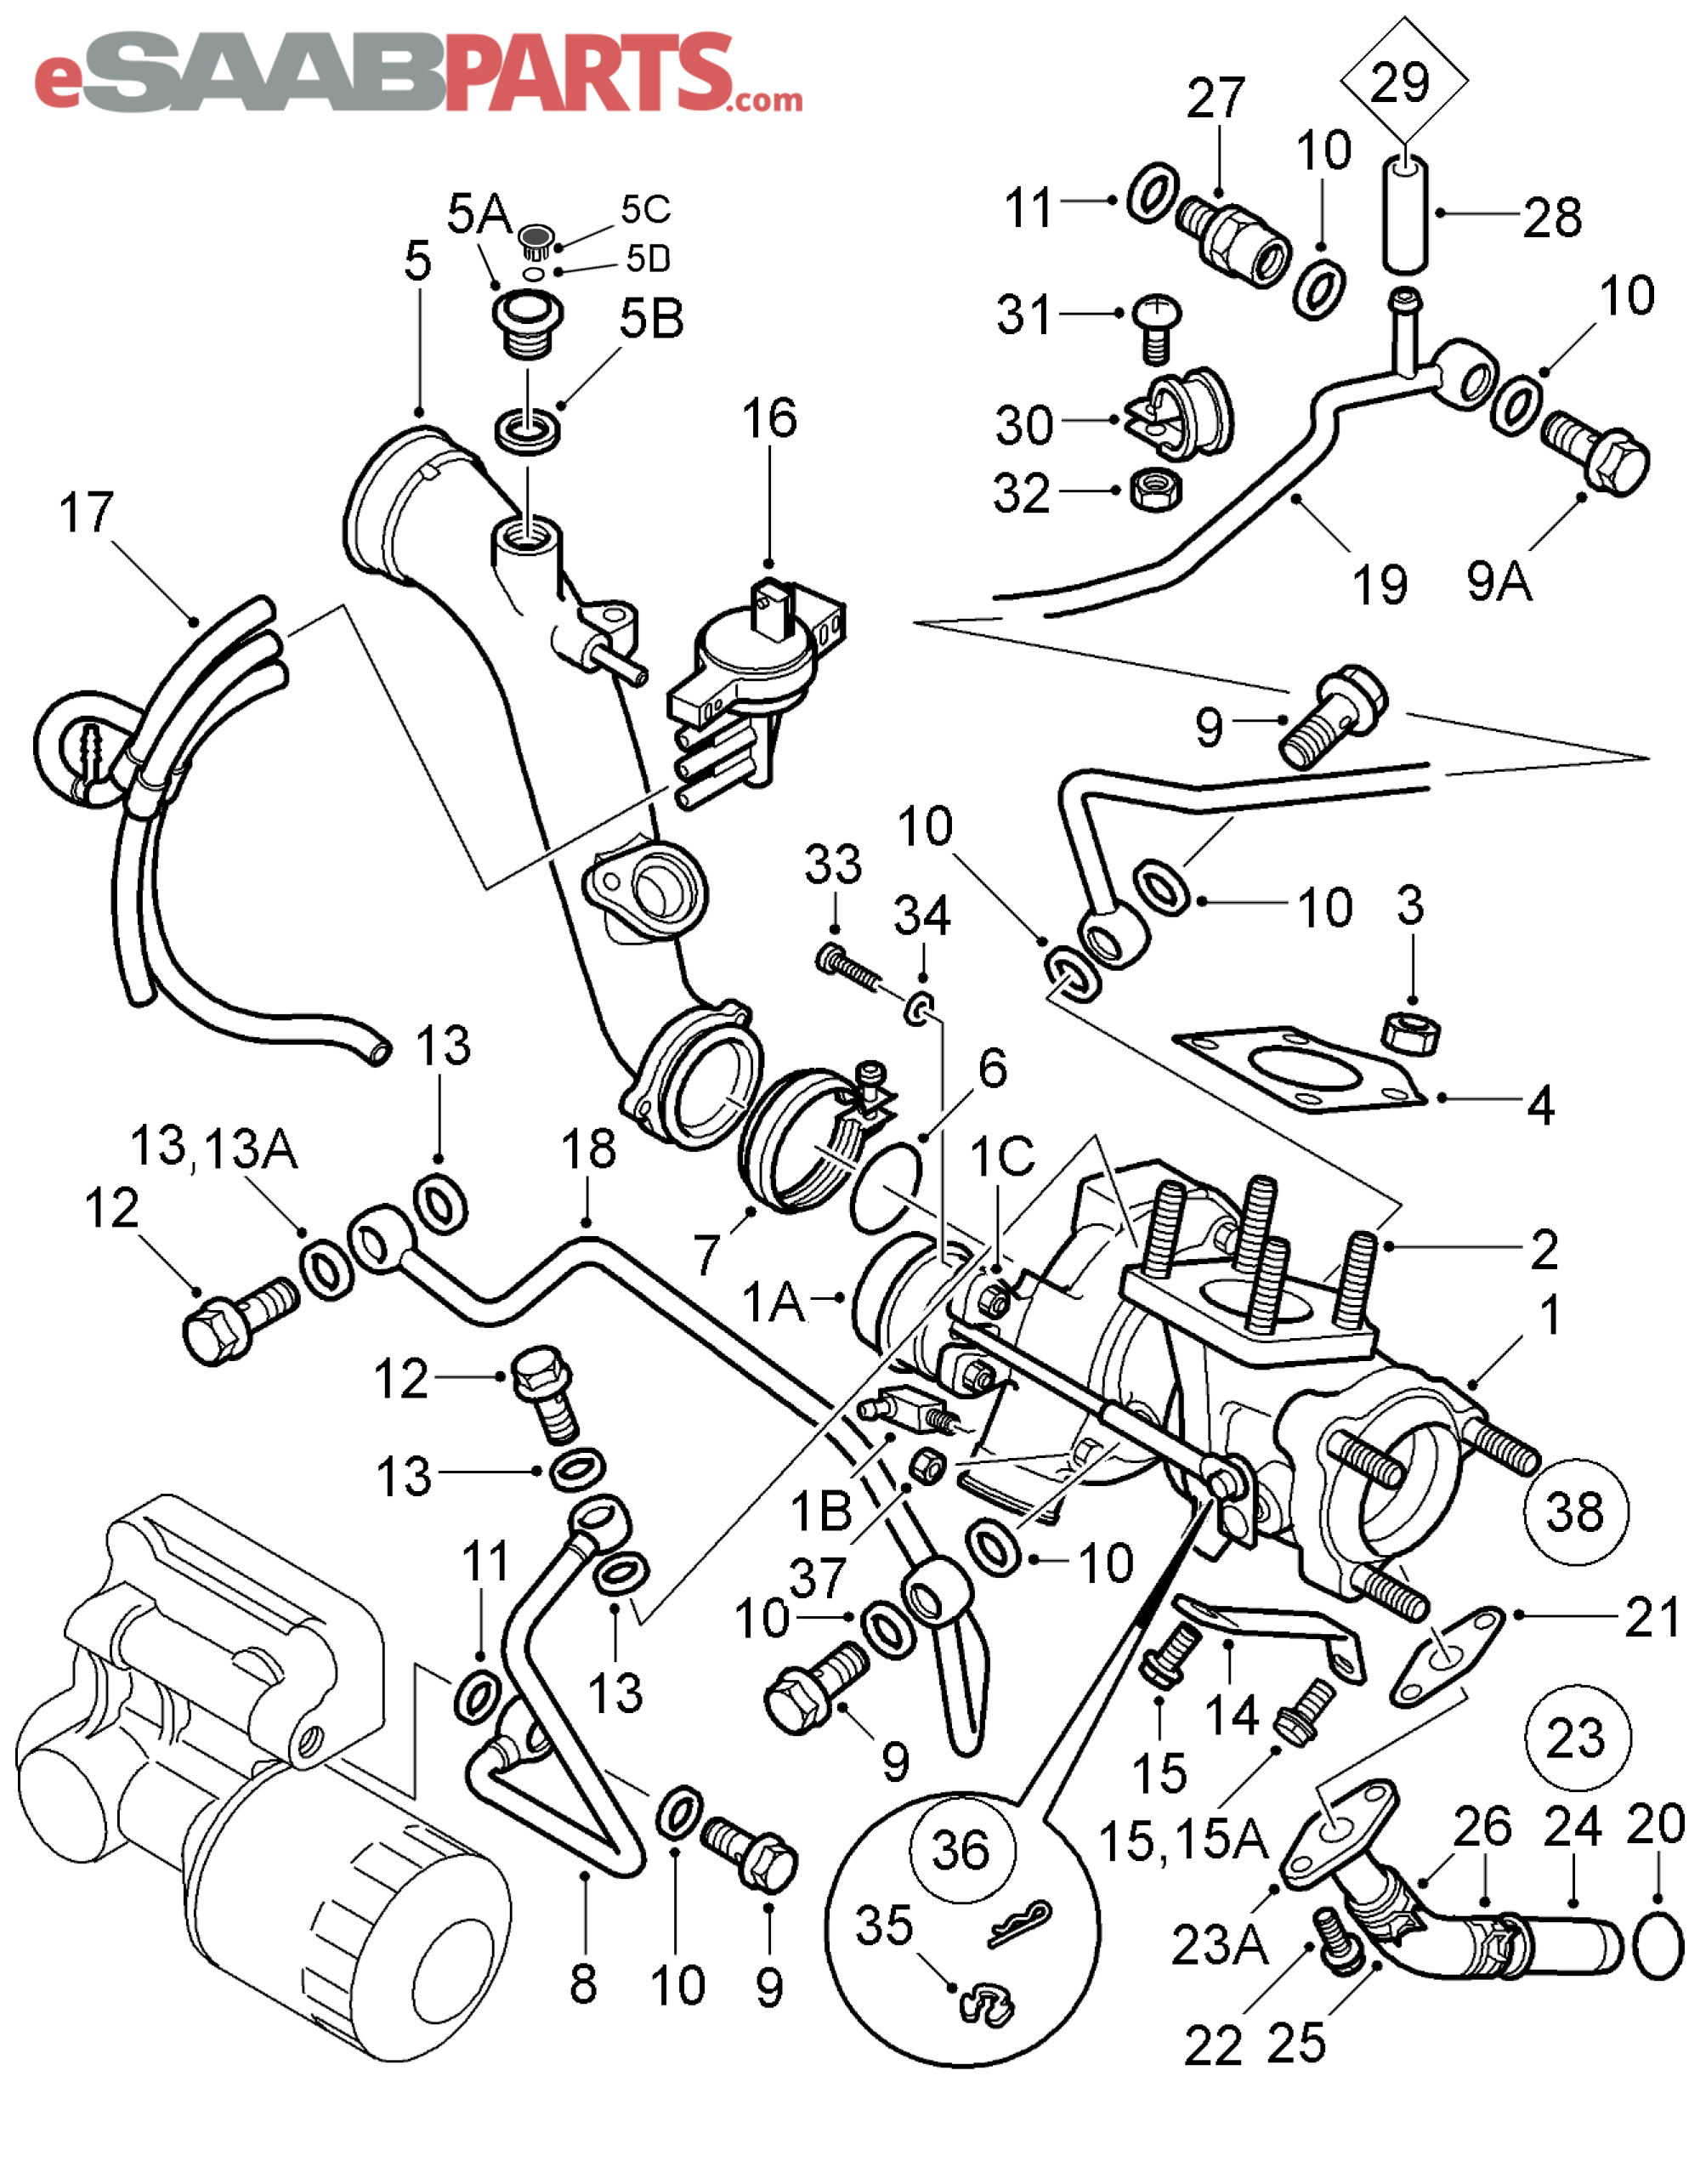 hight resolution of saab 9 5 vacuum hose diagram wiring diagrams diagram in addition saab 9 5 vacuum hose